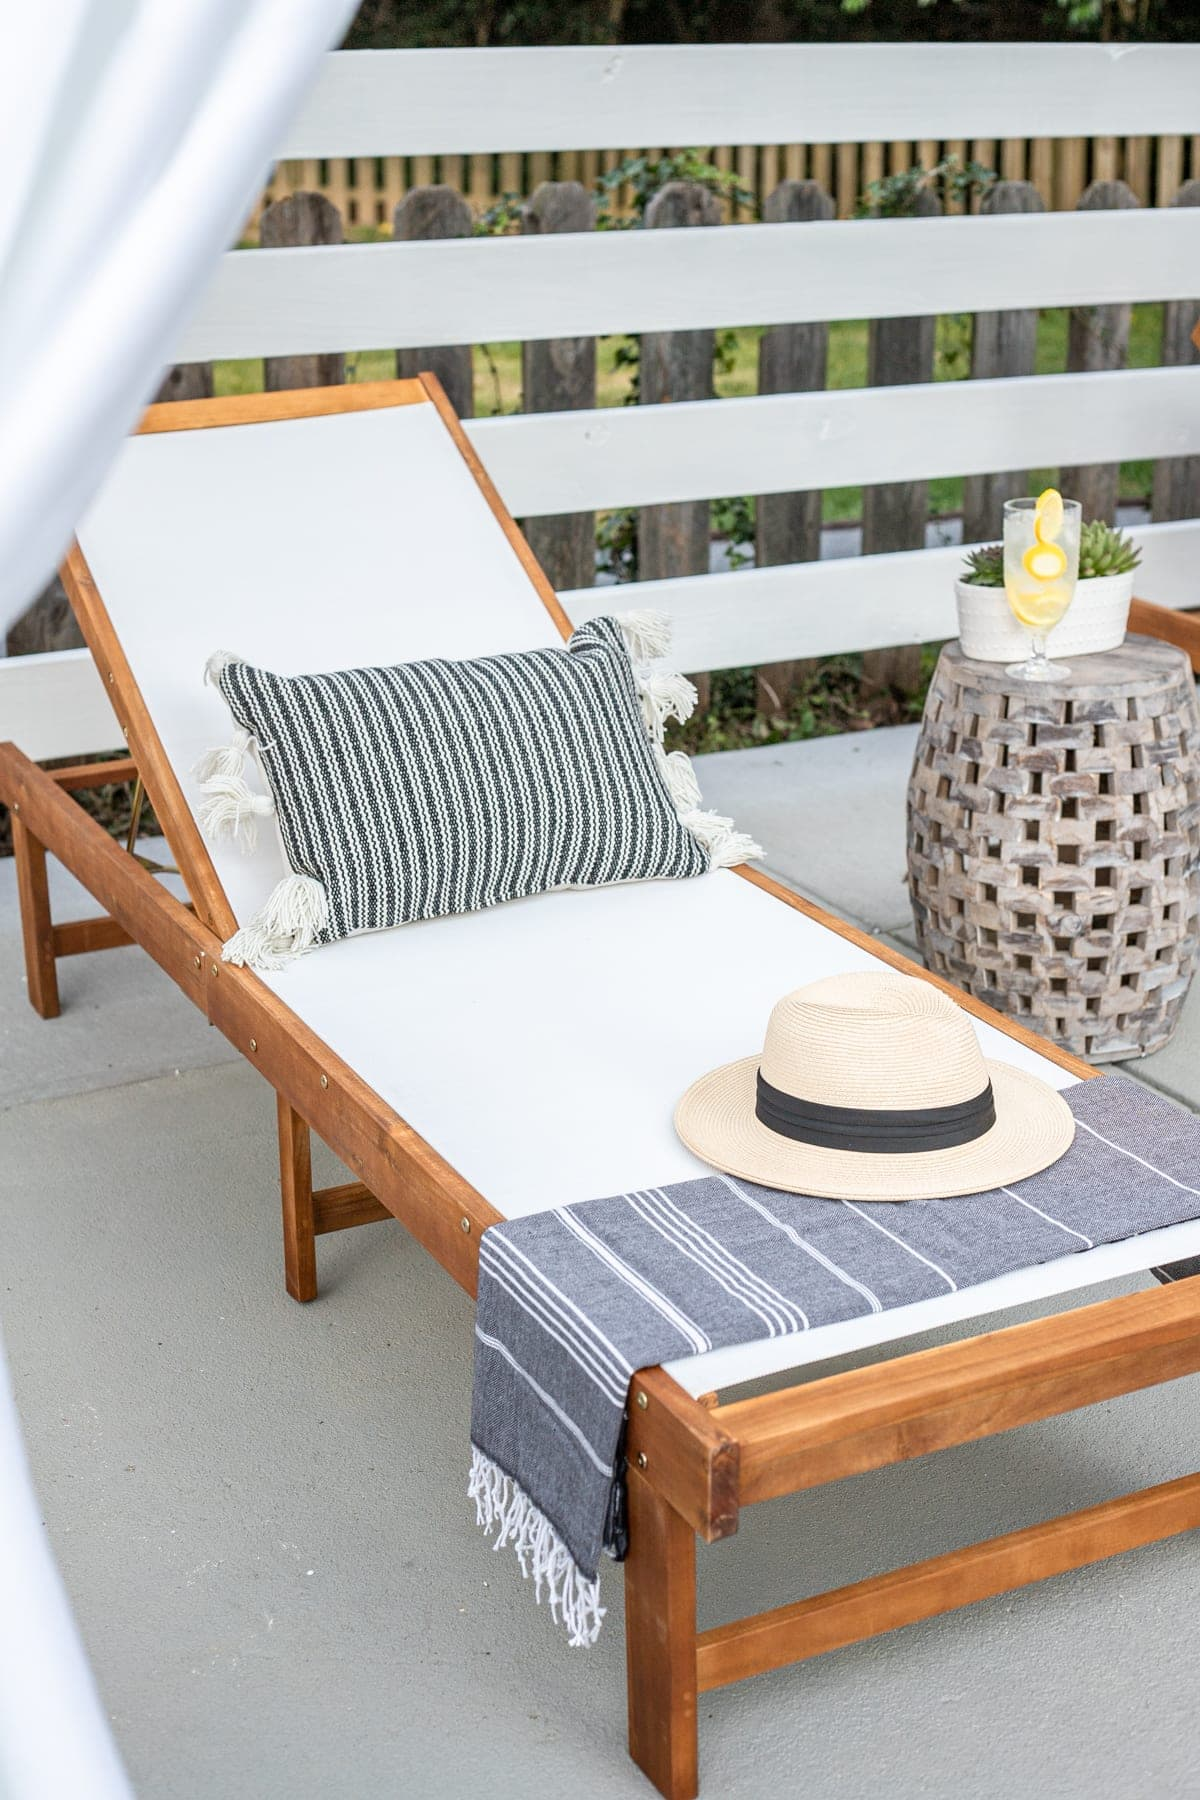 outdoor lounge chair with pillow, turkish towel, and sun hat